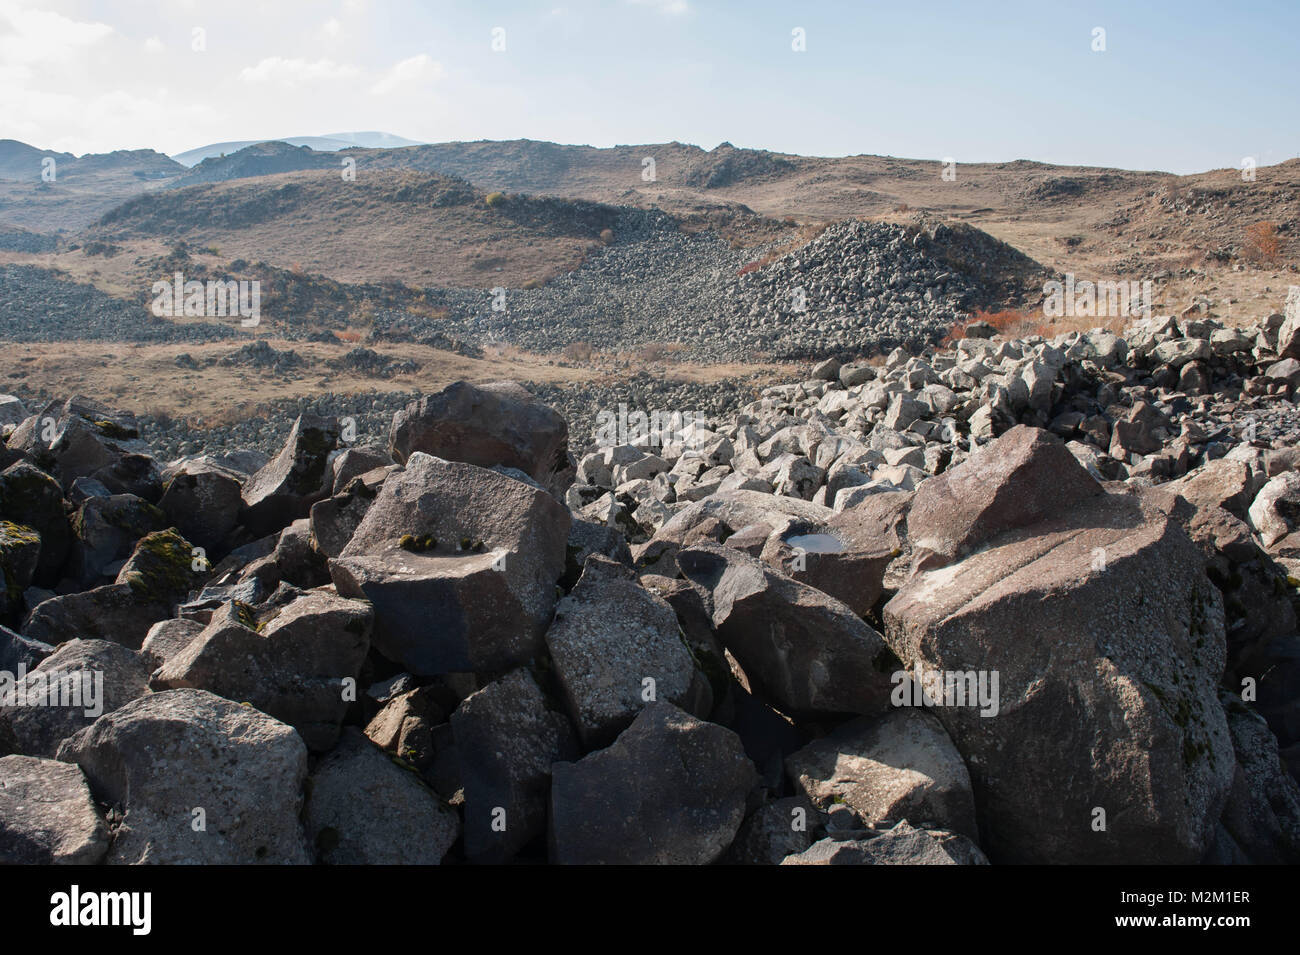 Urartu  also known as Kingdom of Van was an Iron Age kingdom centred on Lake Van in the Armenian Highlands. - Stock Image